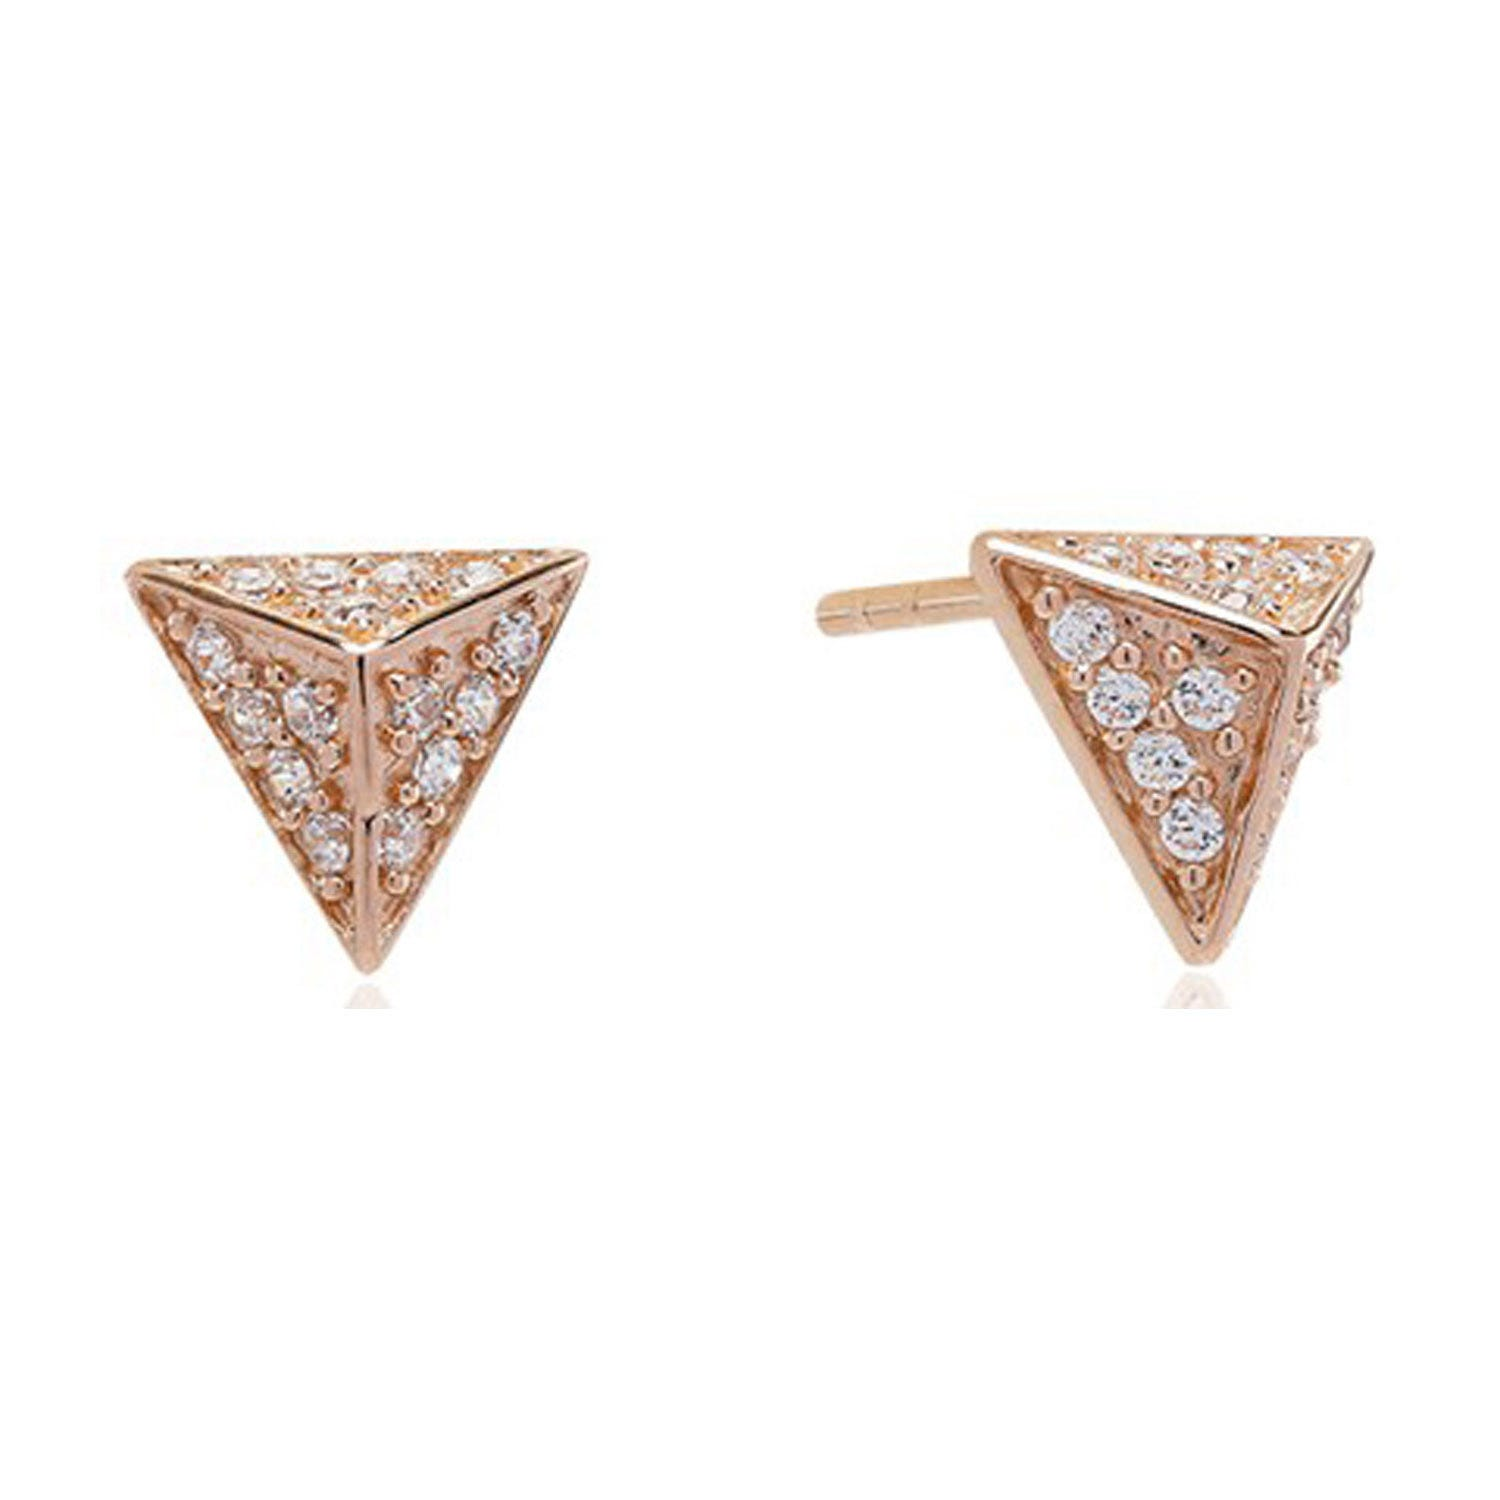 Sif Jakobs Pecetto Piccolo 18ct Rose Gold Plated Cubic Zirconia Stud Earrings